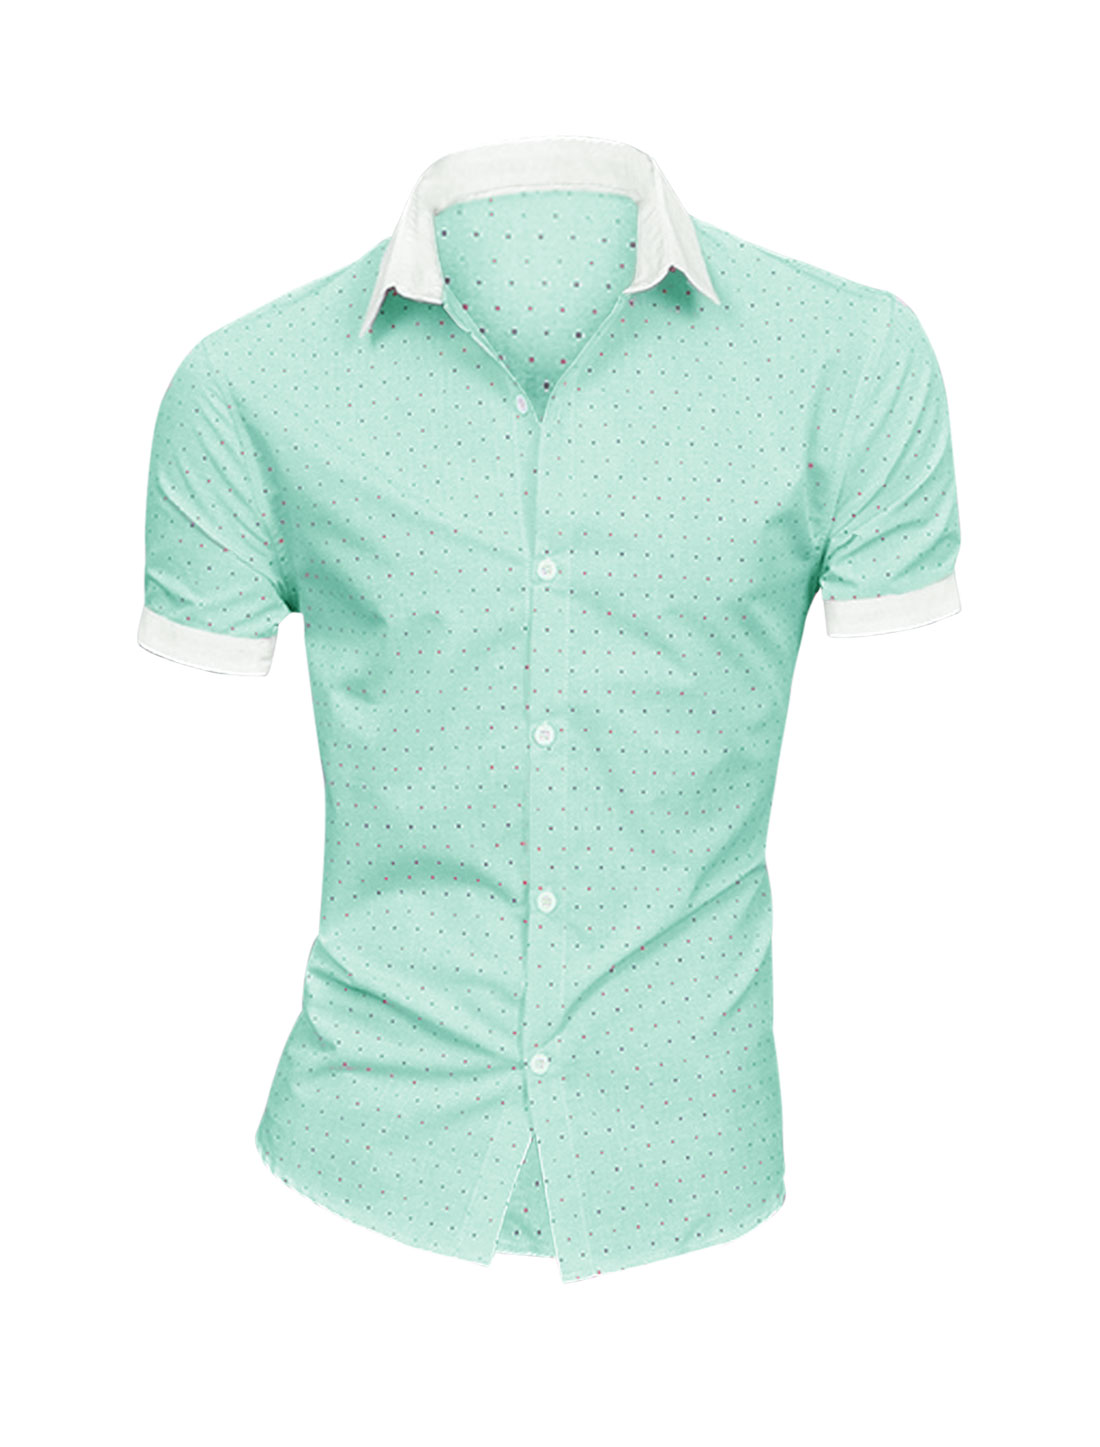 Men Panel Hearts Pattern Chic NEW Top Shirt Light Green M